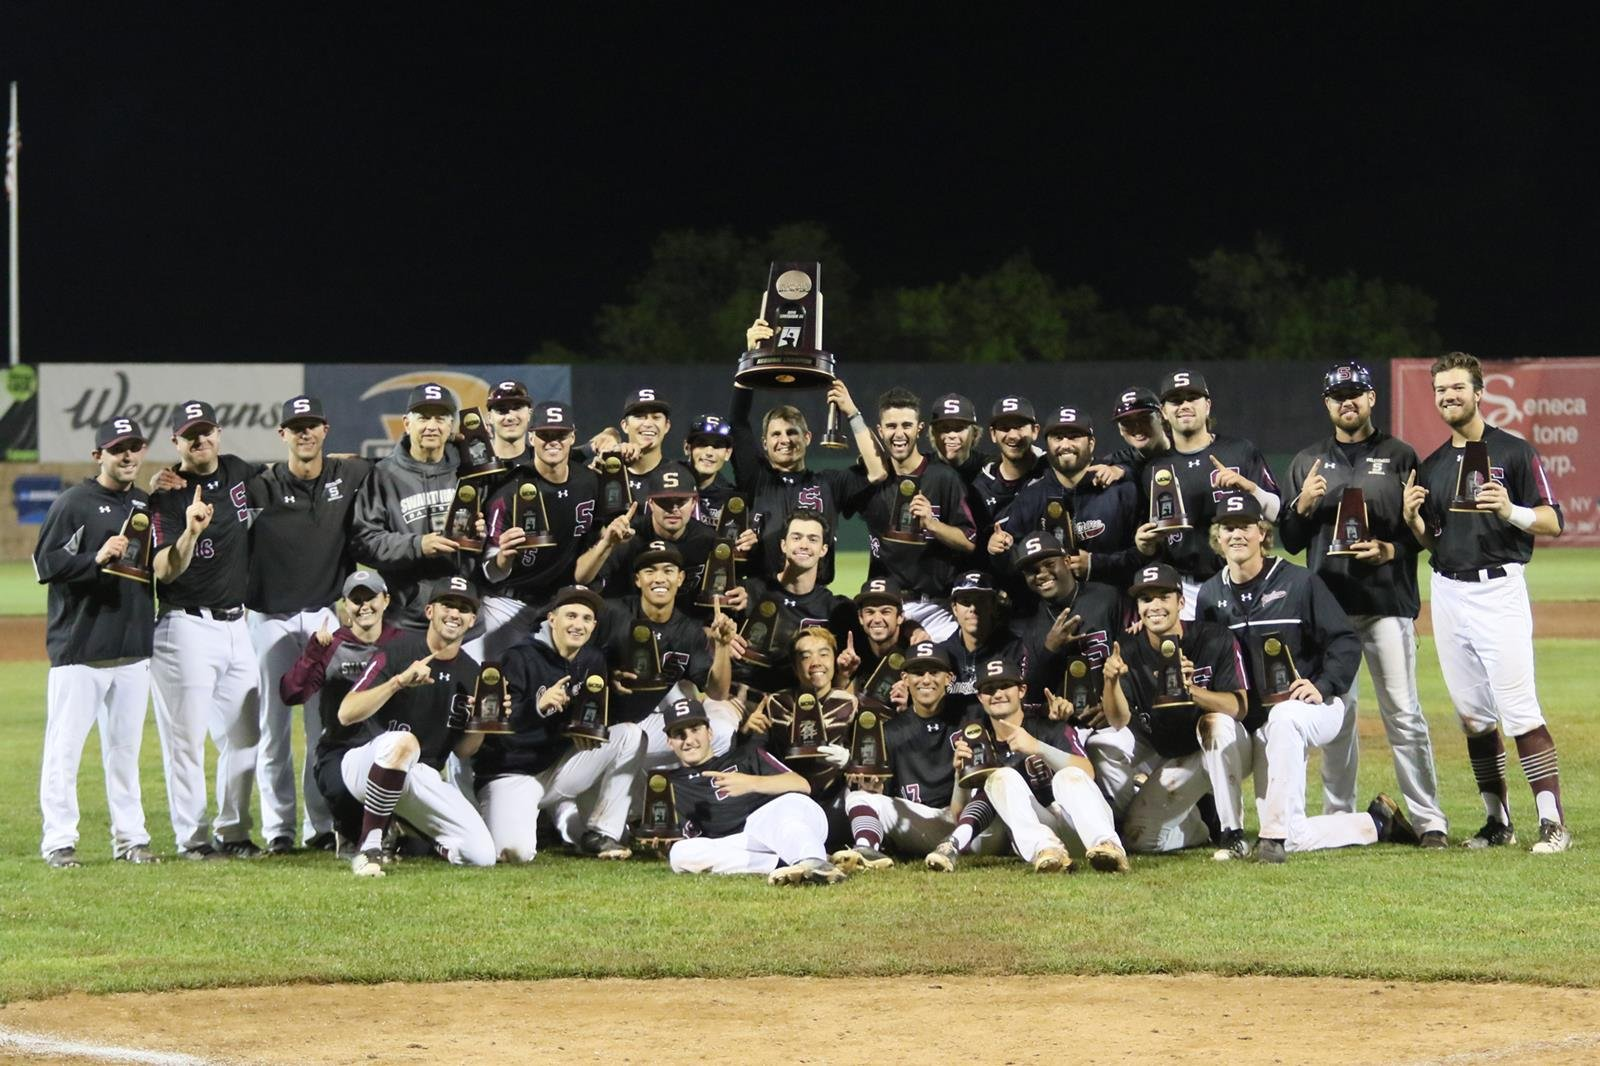 The Garnet Baseball team with trophy